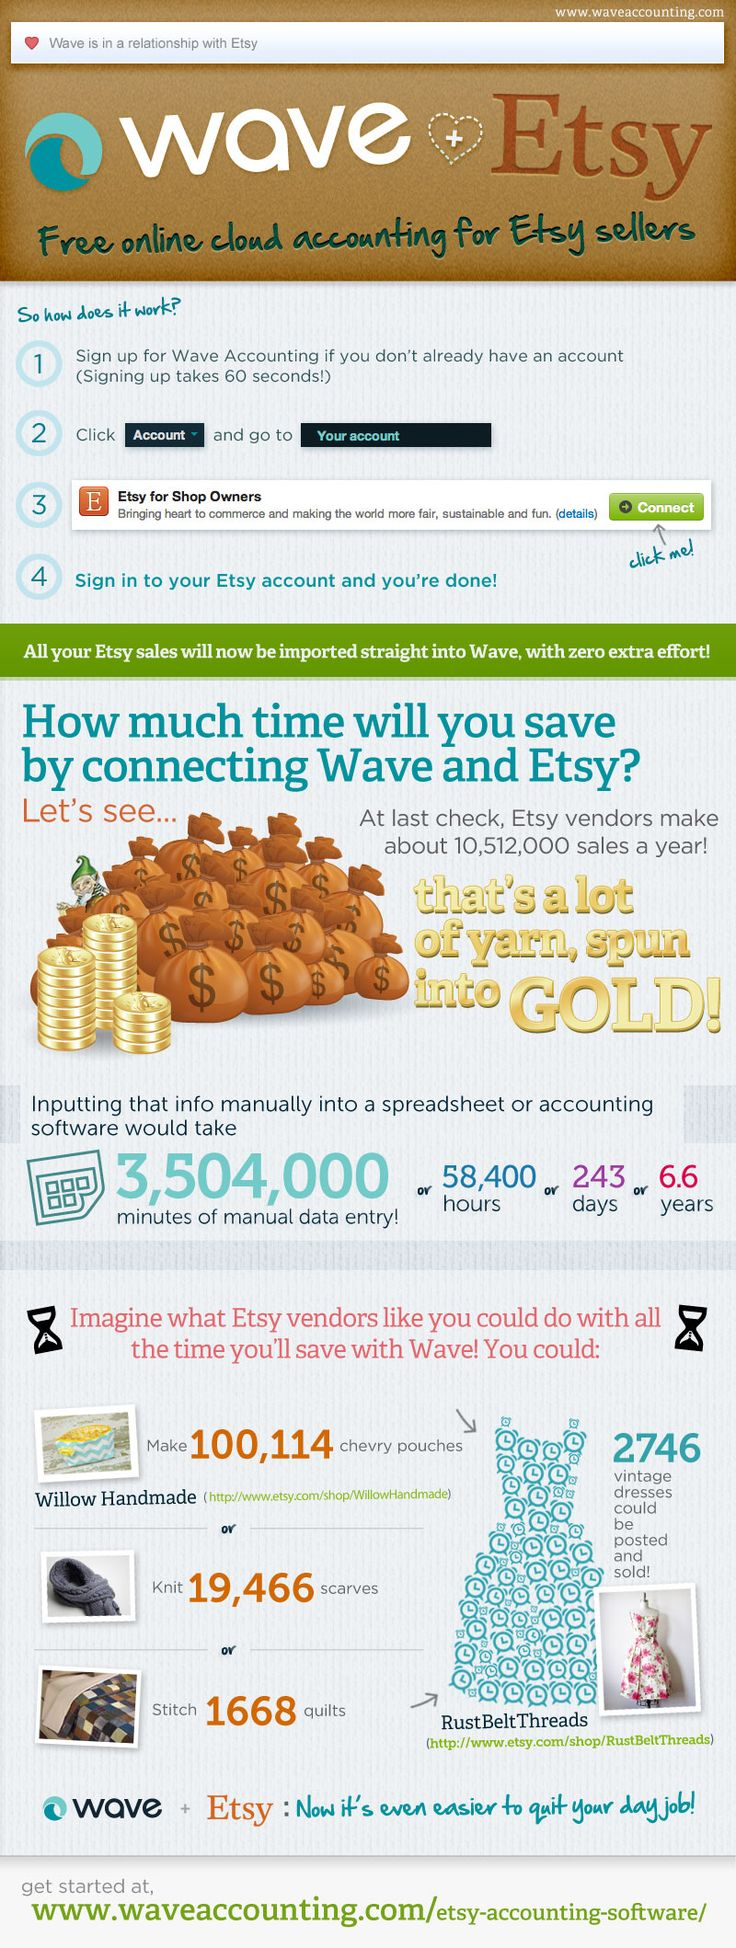 Etsy is in a Relationship with Wave Accounting! - Wave Accounting - Free Small Business Accounting Software